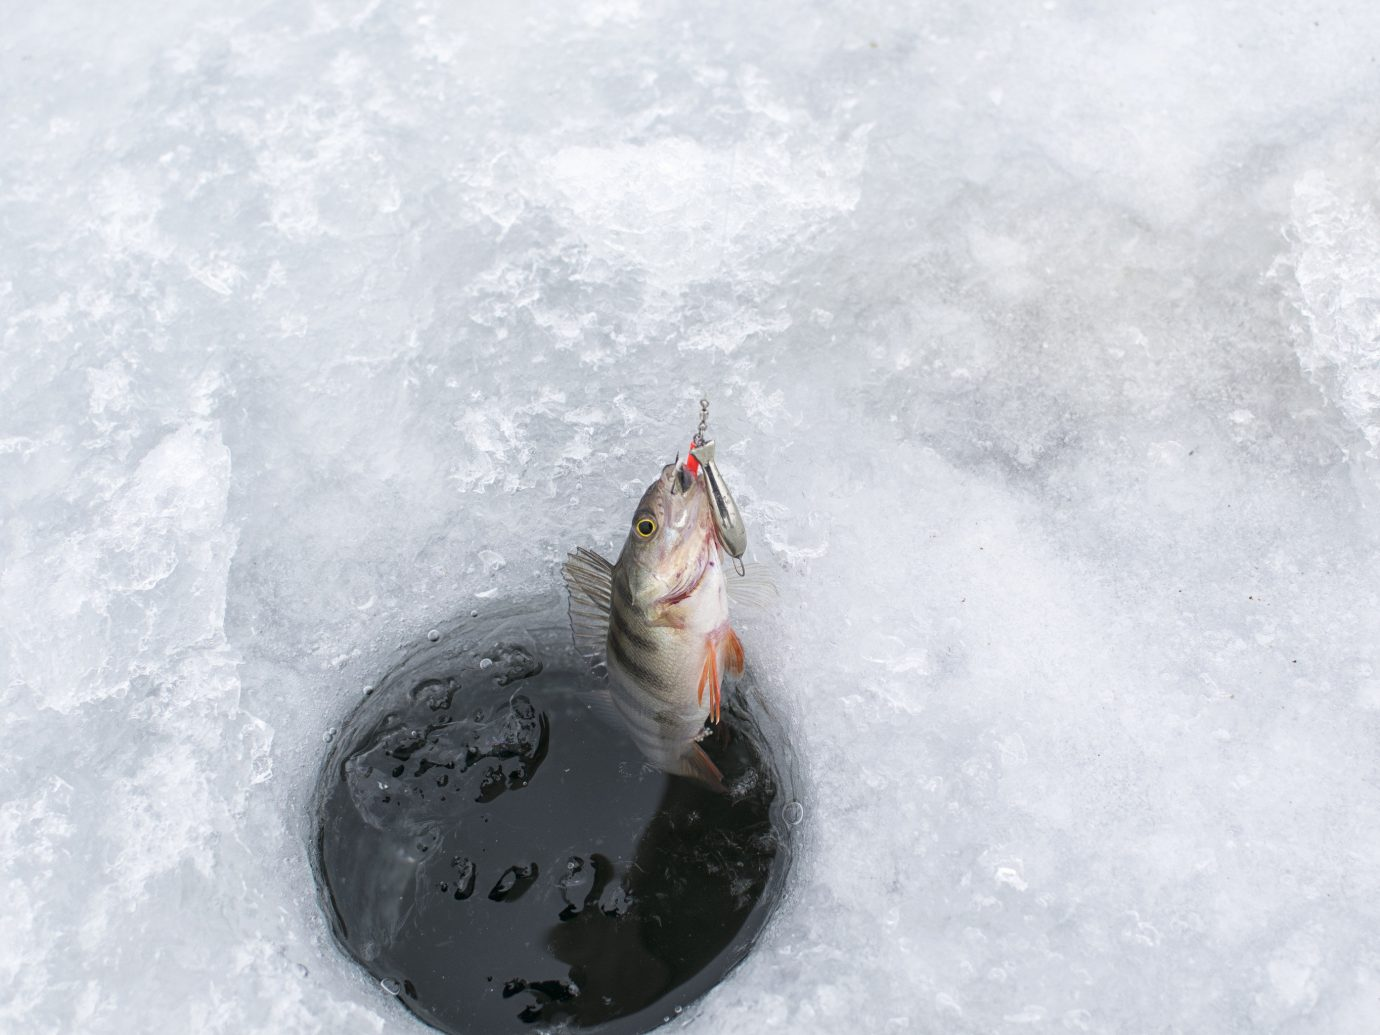 Winter snow water outdoor freezing ice wave water sport fish winter storm